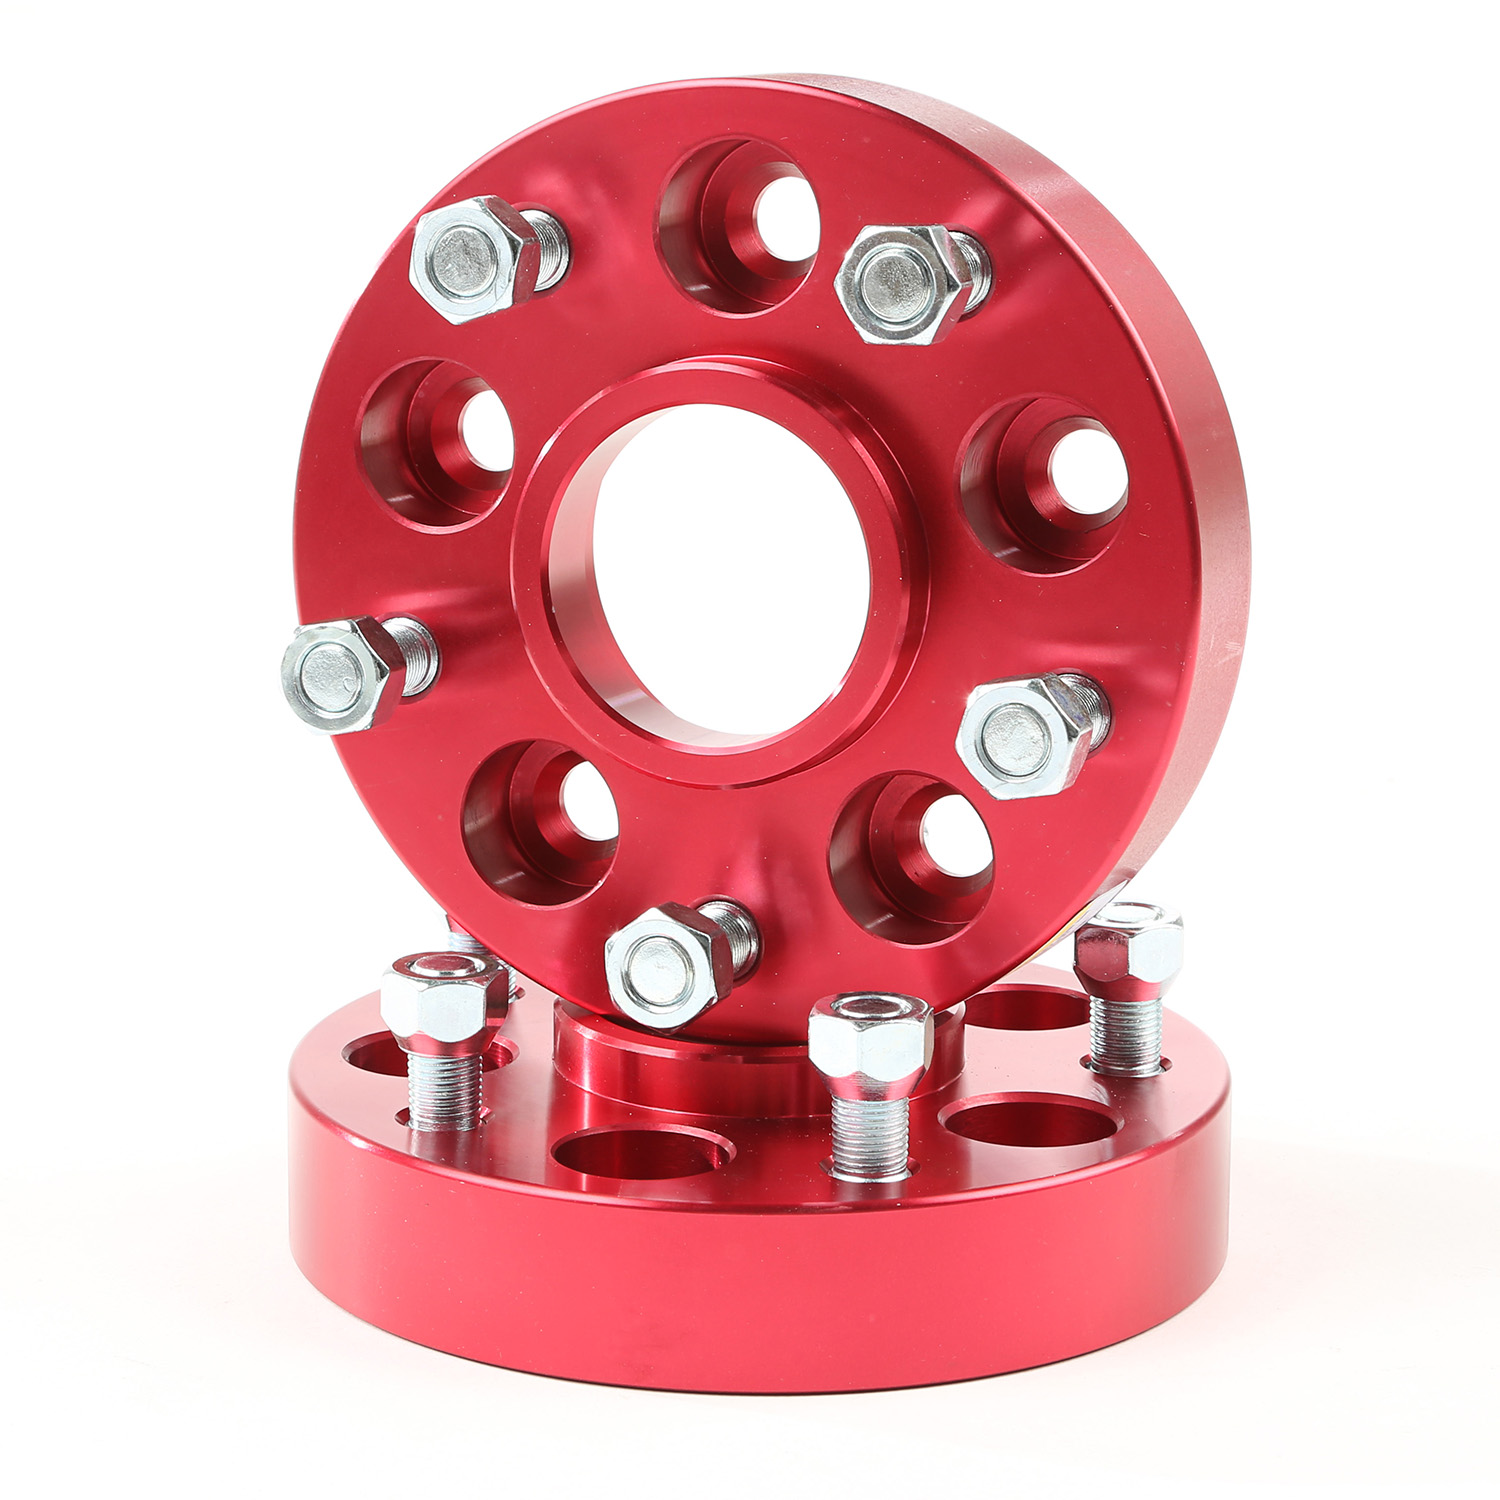 Wheel Adapters Red 5 x 5-Inch to 5 x 4.5-Inch Bolt Pattern x 11311